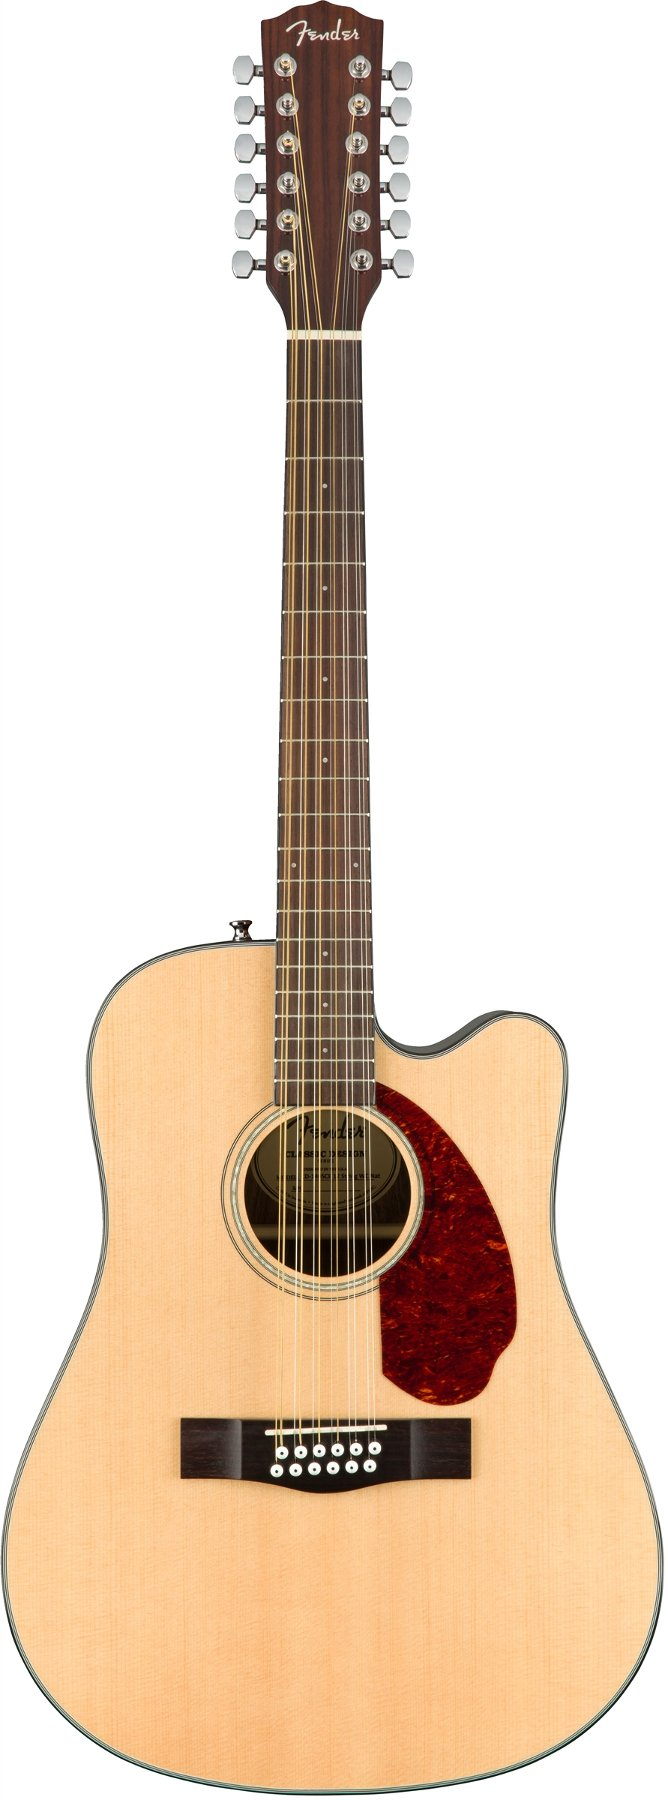 12-String Dreadnought Acoustic-Electric Guitar with Hardshell Case